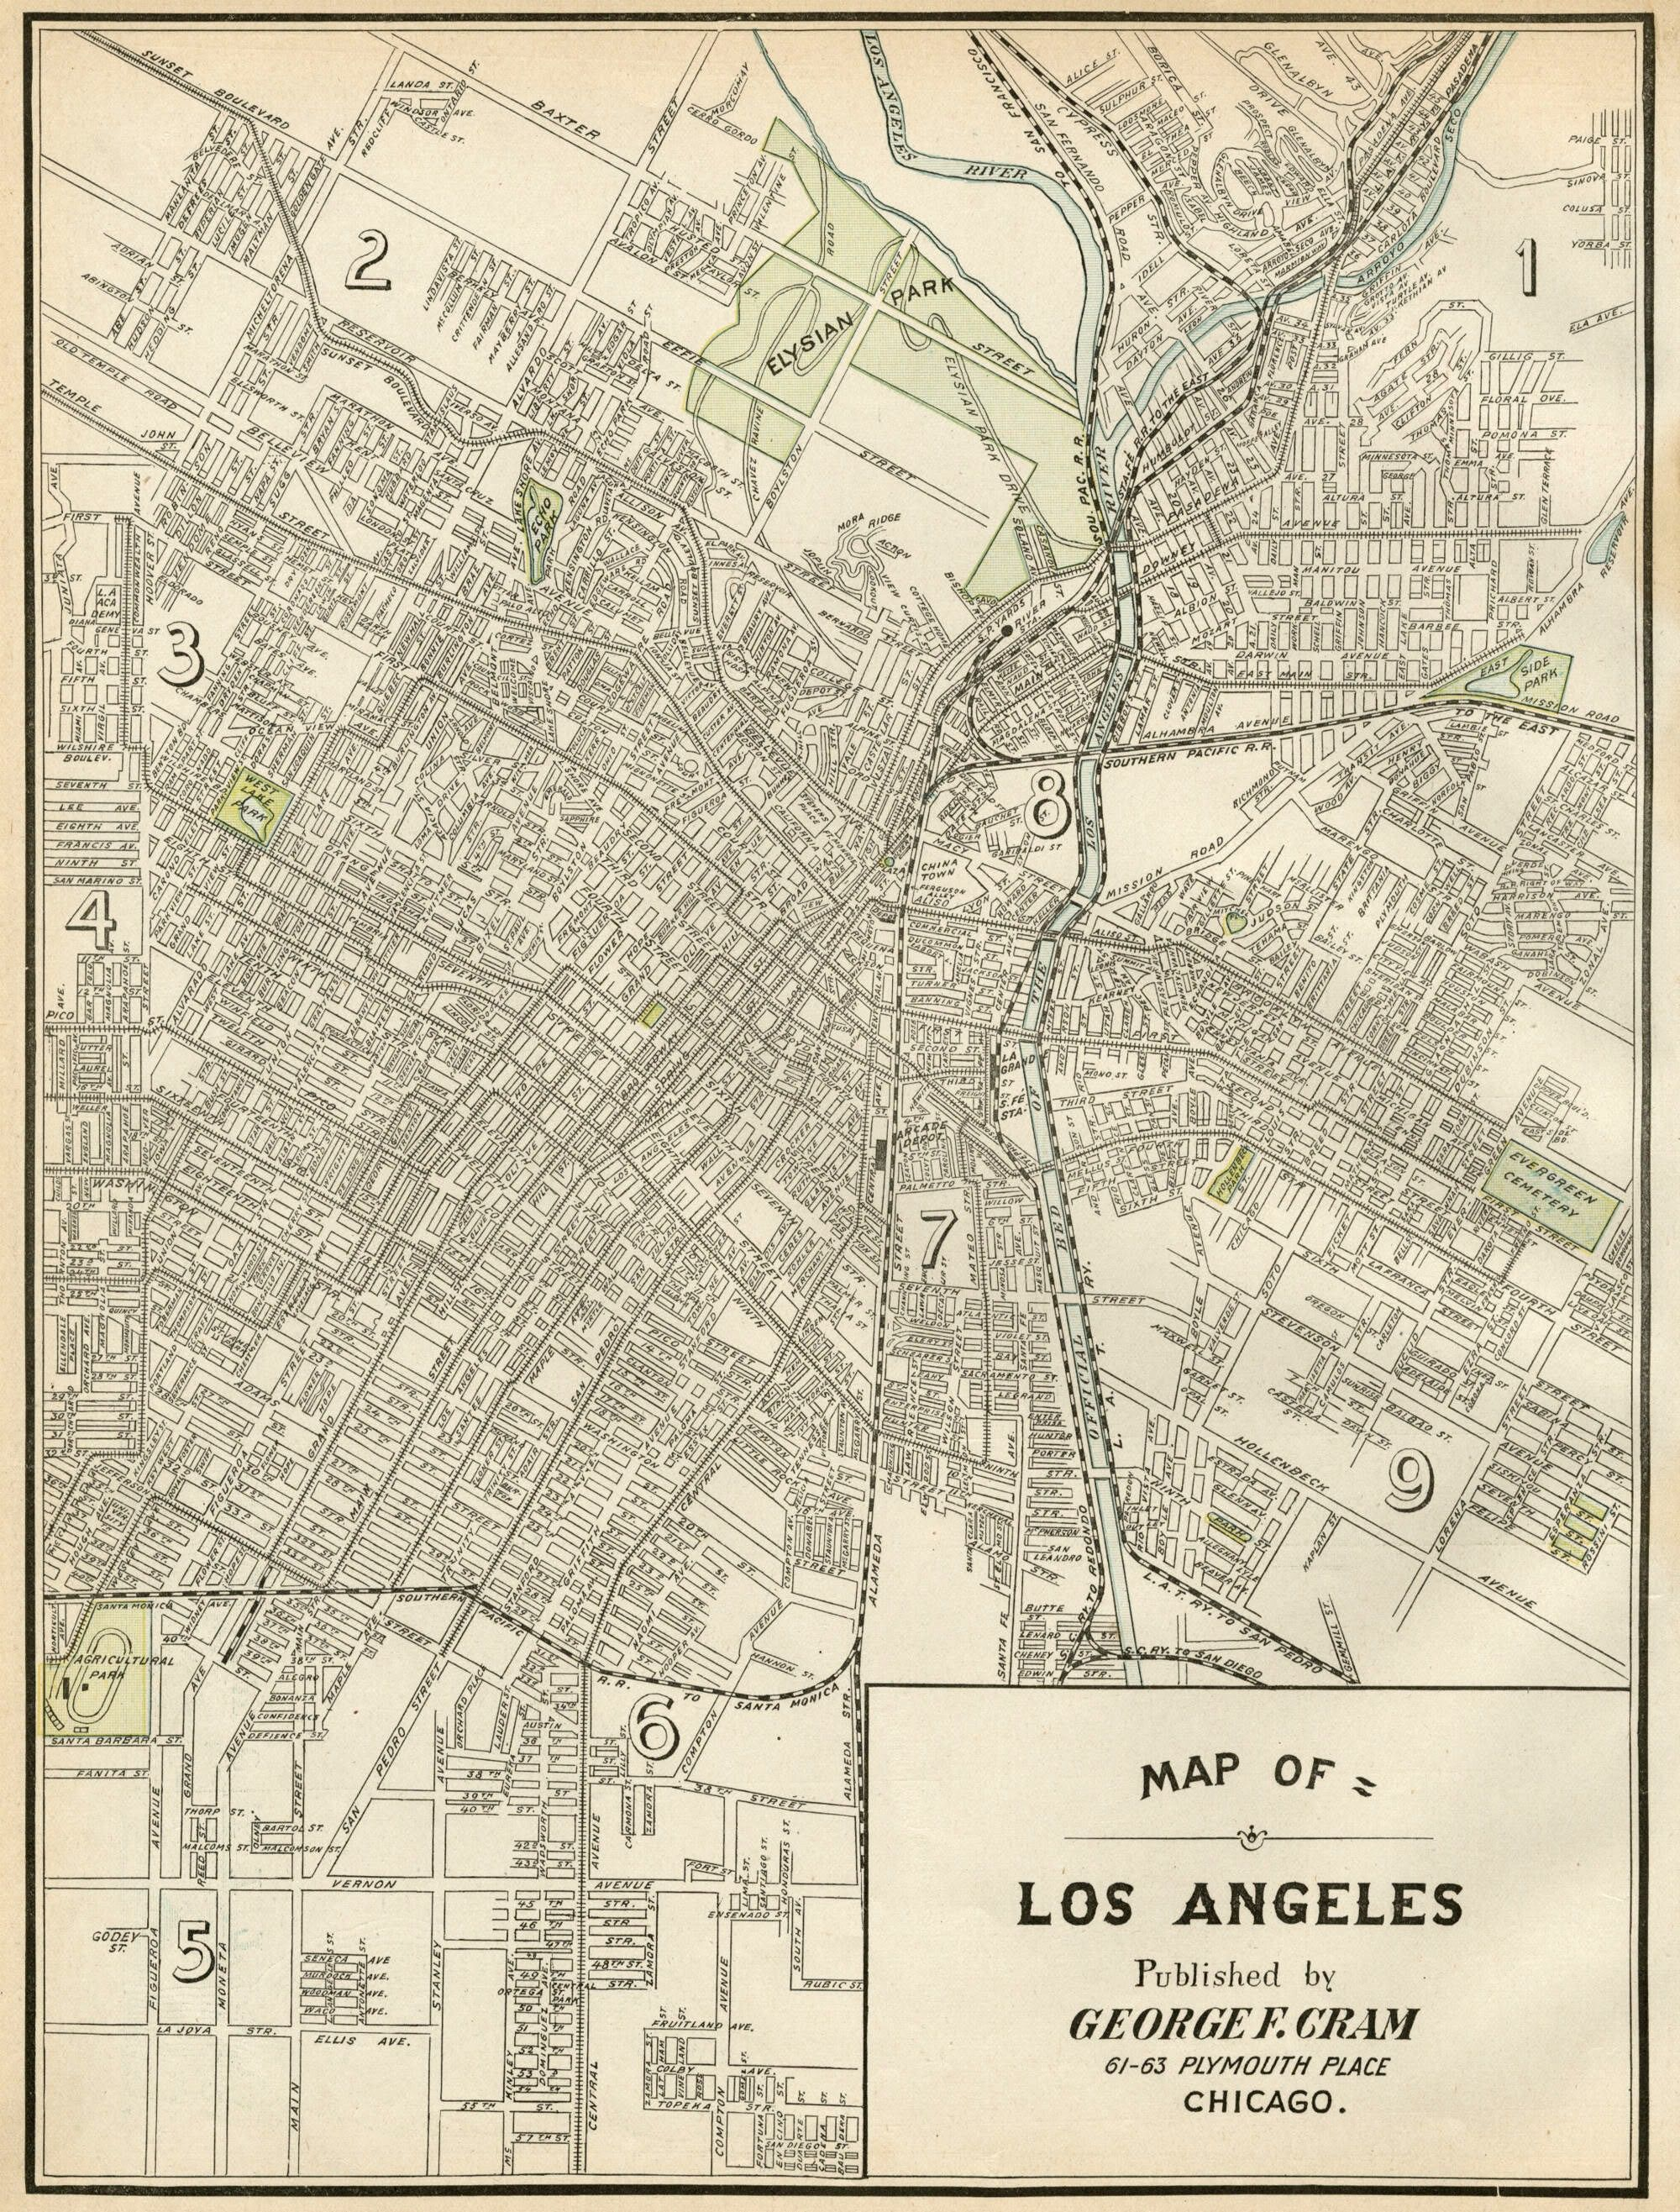 Map of Los Angeles from 1899 (right click to save as a high res image) :: This would be cool to transfer onto a project!